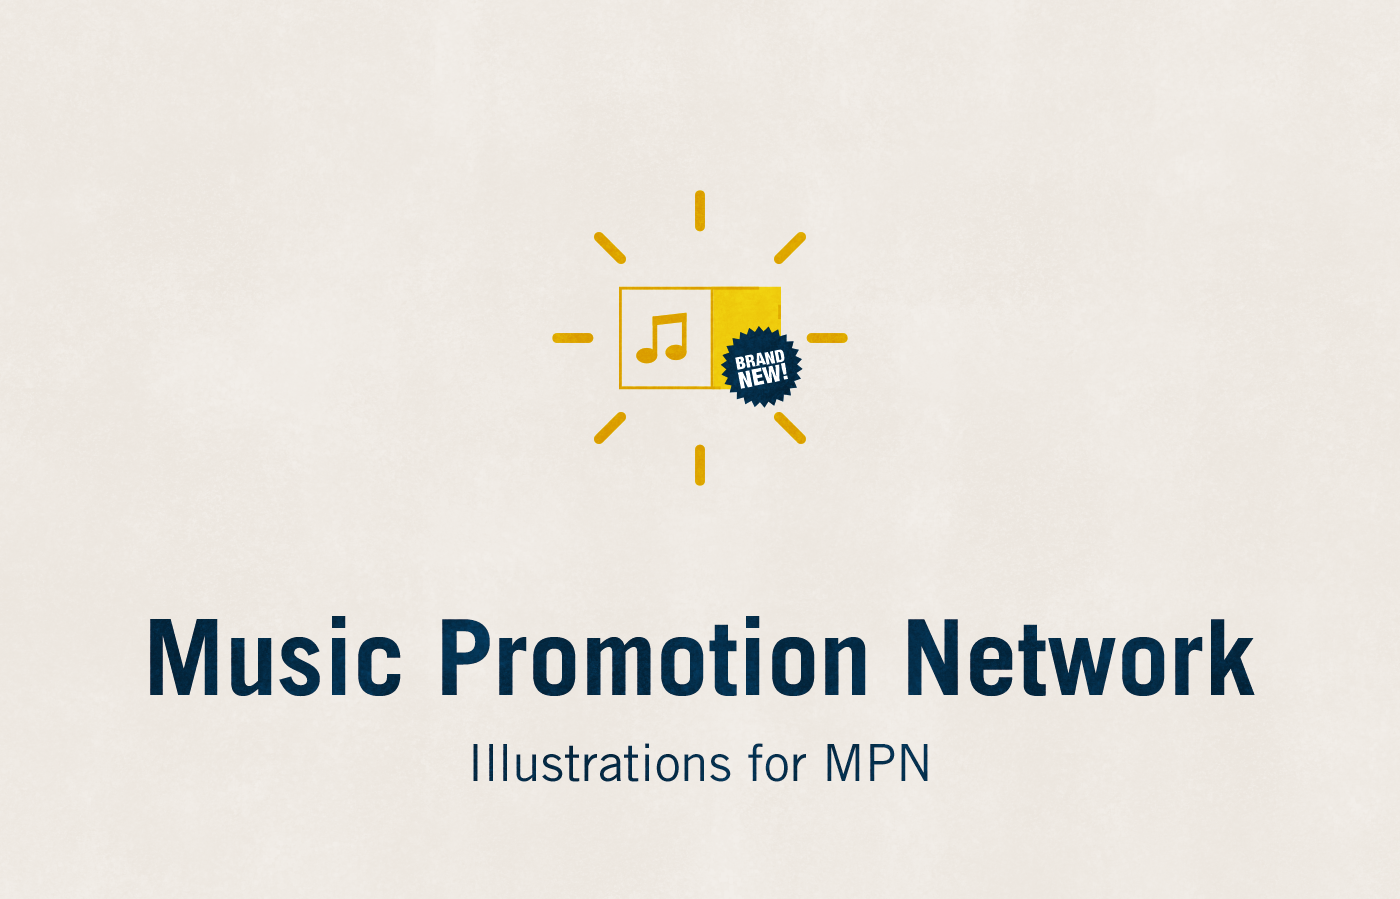 Music Promotion Network